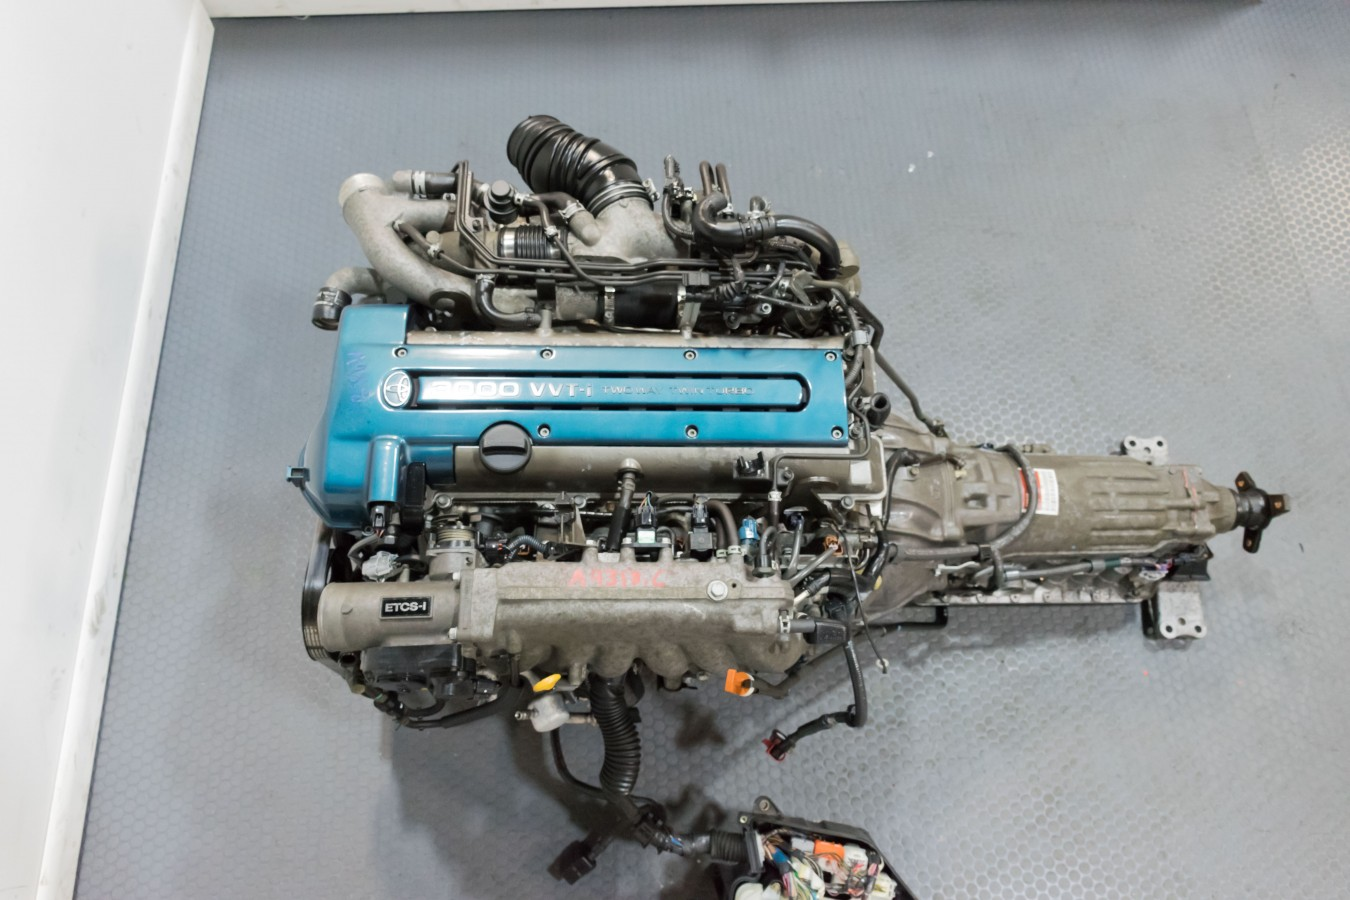 Groovy Toyota Aristo Front Sump 2Jz Gte Engine With Auto Trans Ecu Wiring Cloud Orsalboapumohammedshrineorg